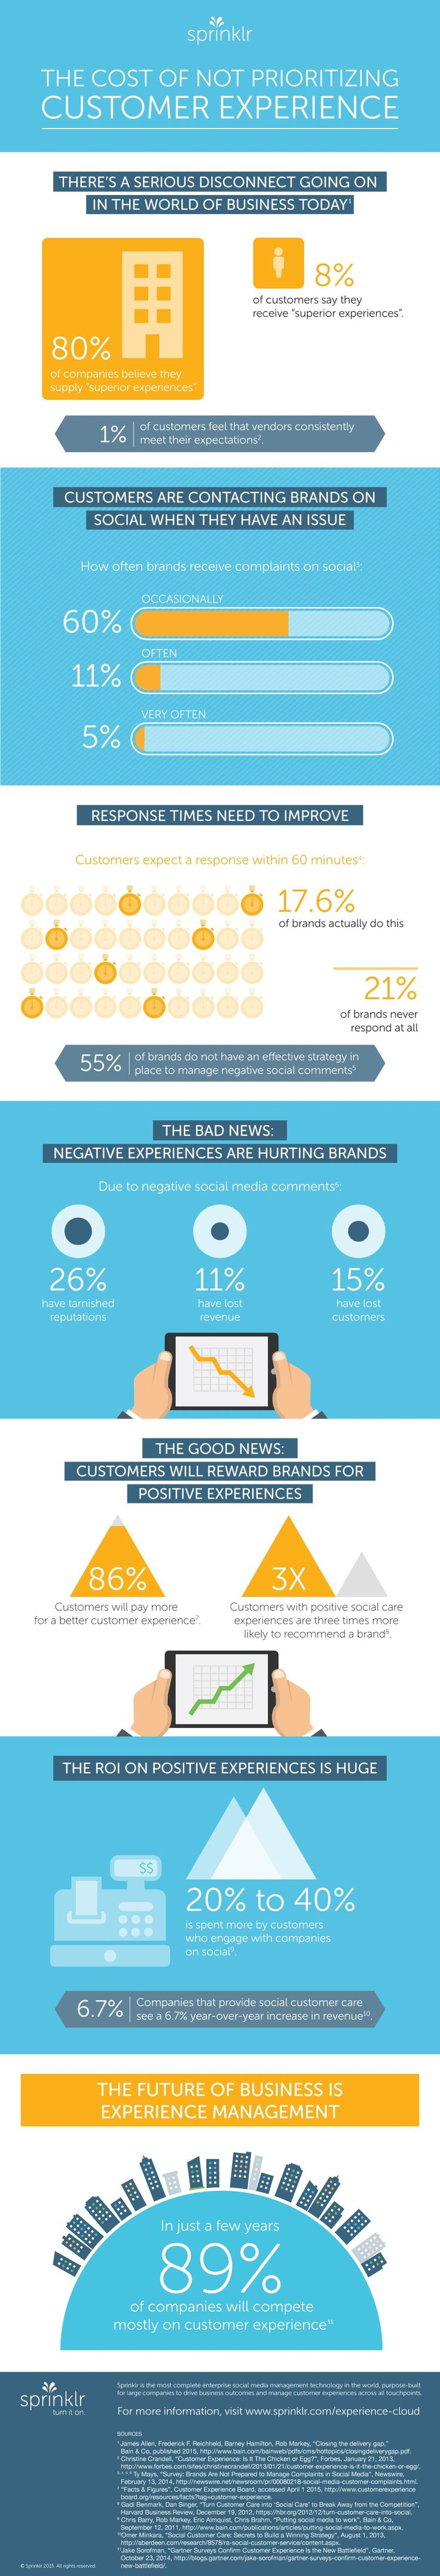 """80% of companies believe they supply """"superior experiences"""", but only 1% of customers feel that vendors consistently meet their expectations.   Check this #infographic: The Cost of Not Prioritizing Customer Experience."""